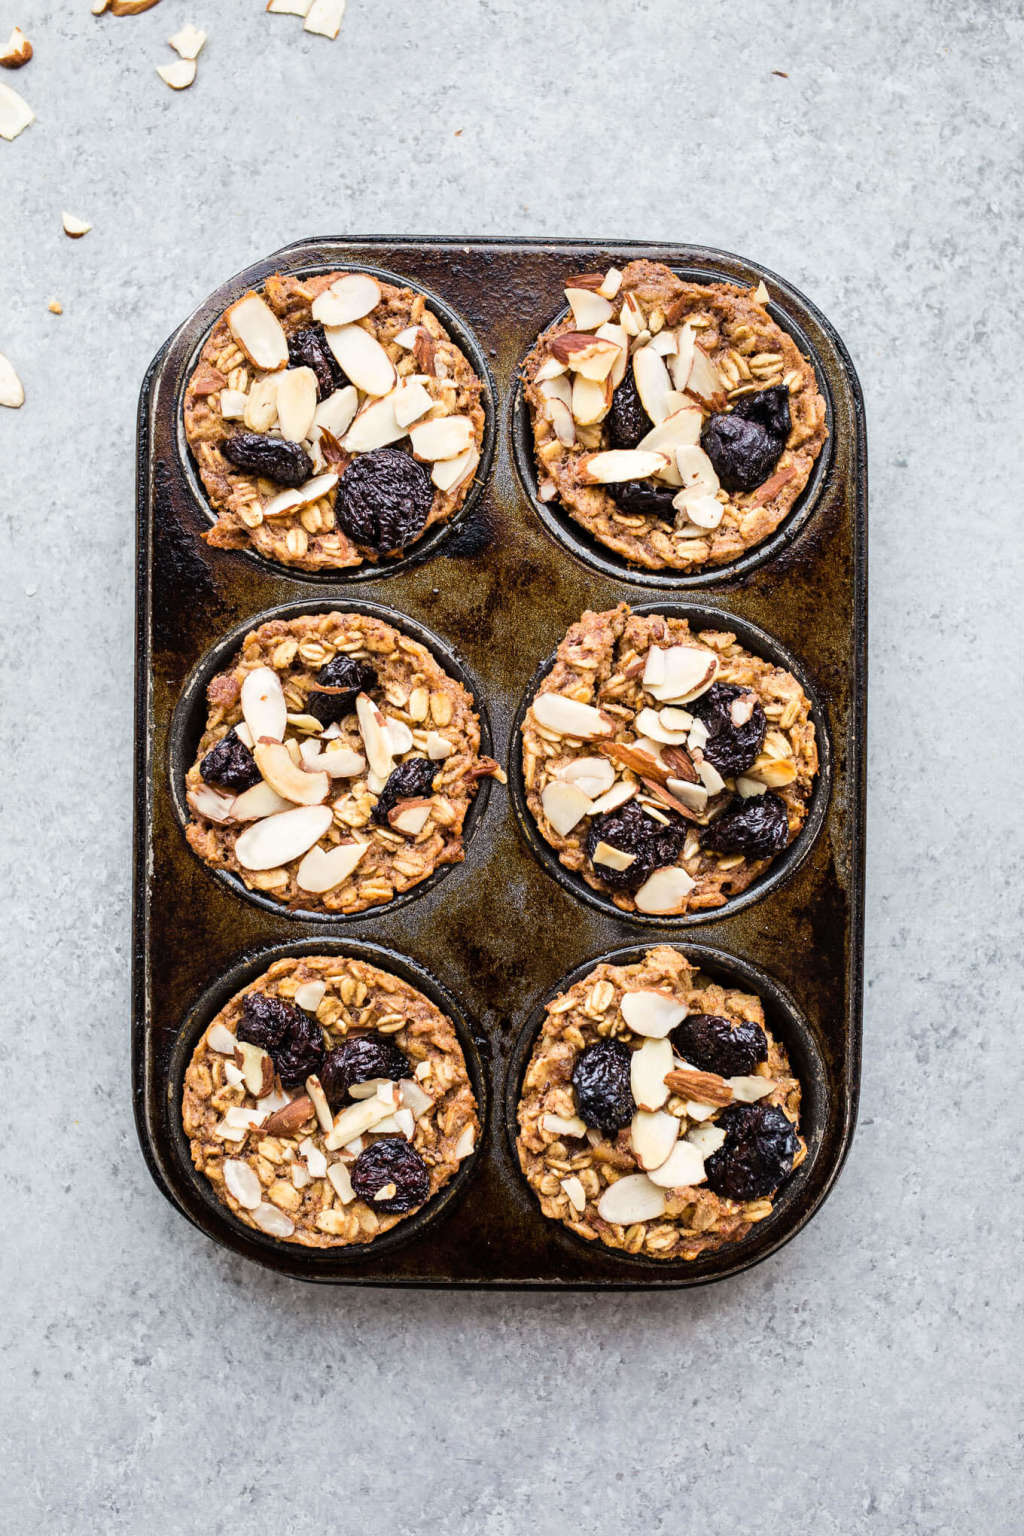 These Healthy Baked Oatmeal Cups Are a Breakfast Savior